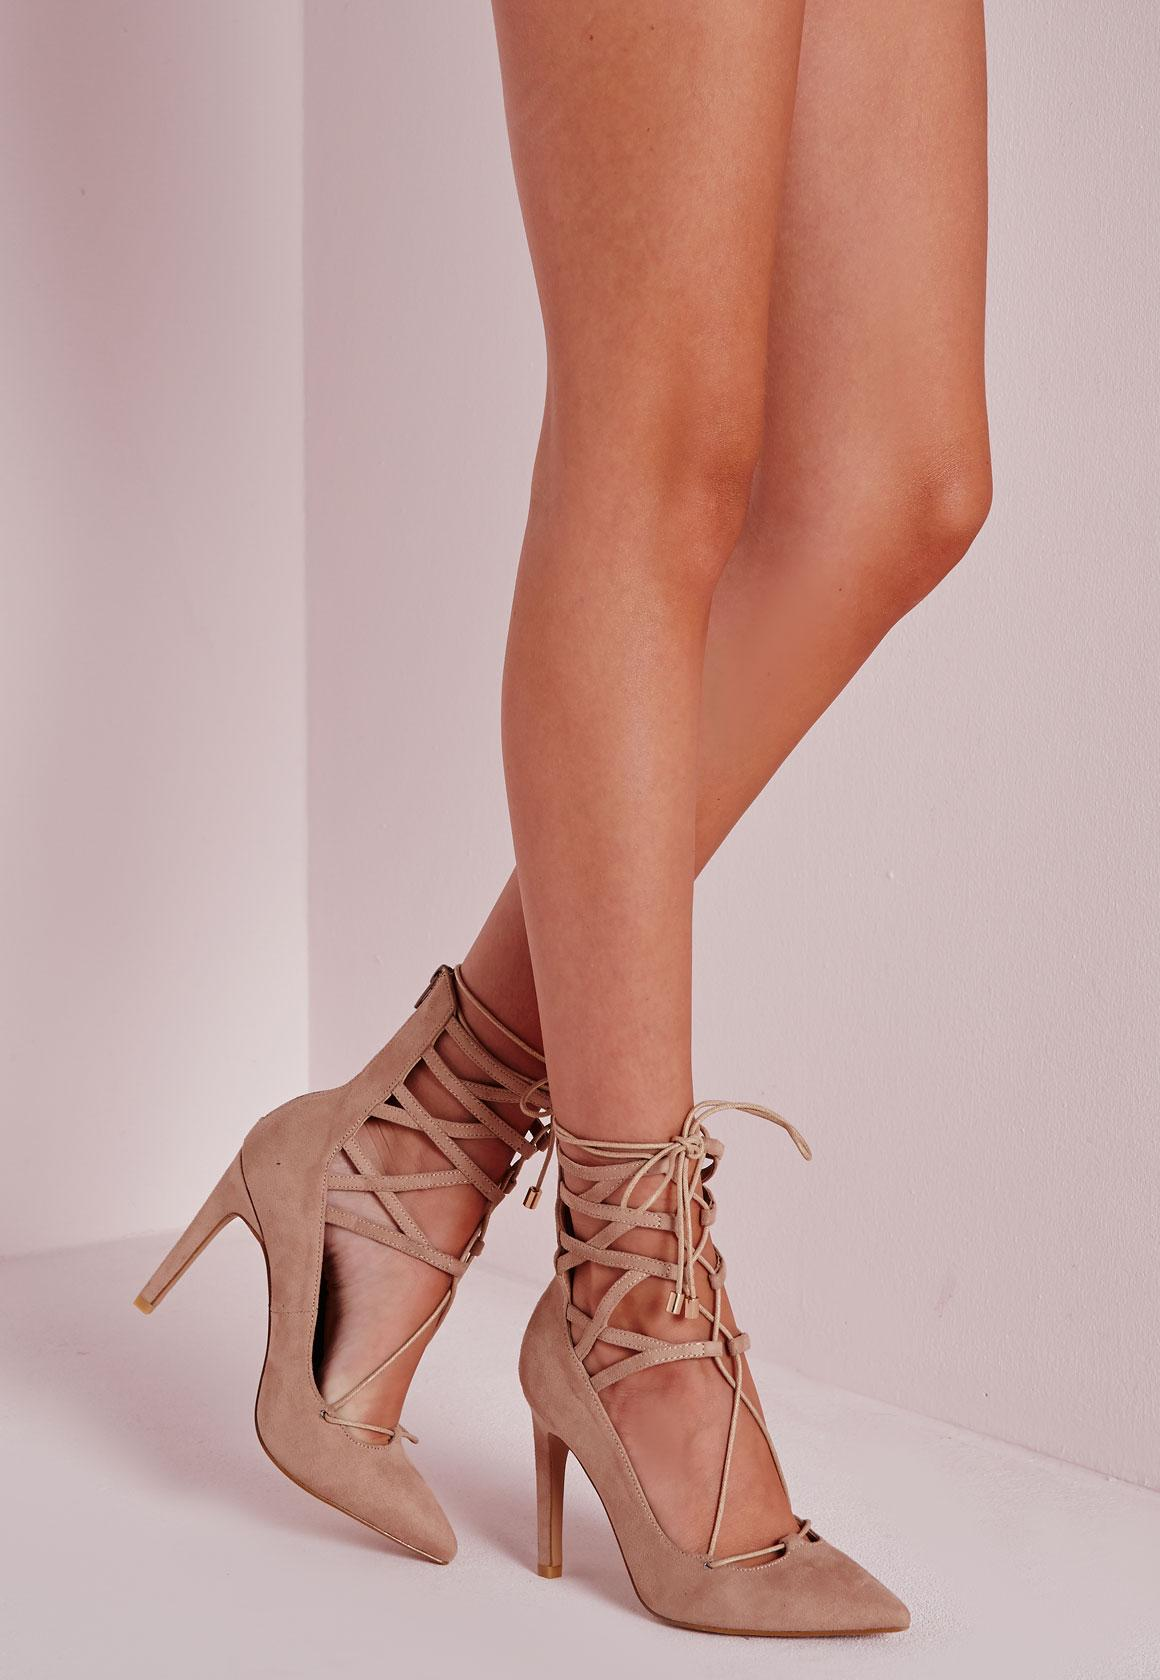 Lace Up Stiletto Heeled Shoes Nude - Shoes - High Heels - Missguided